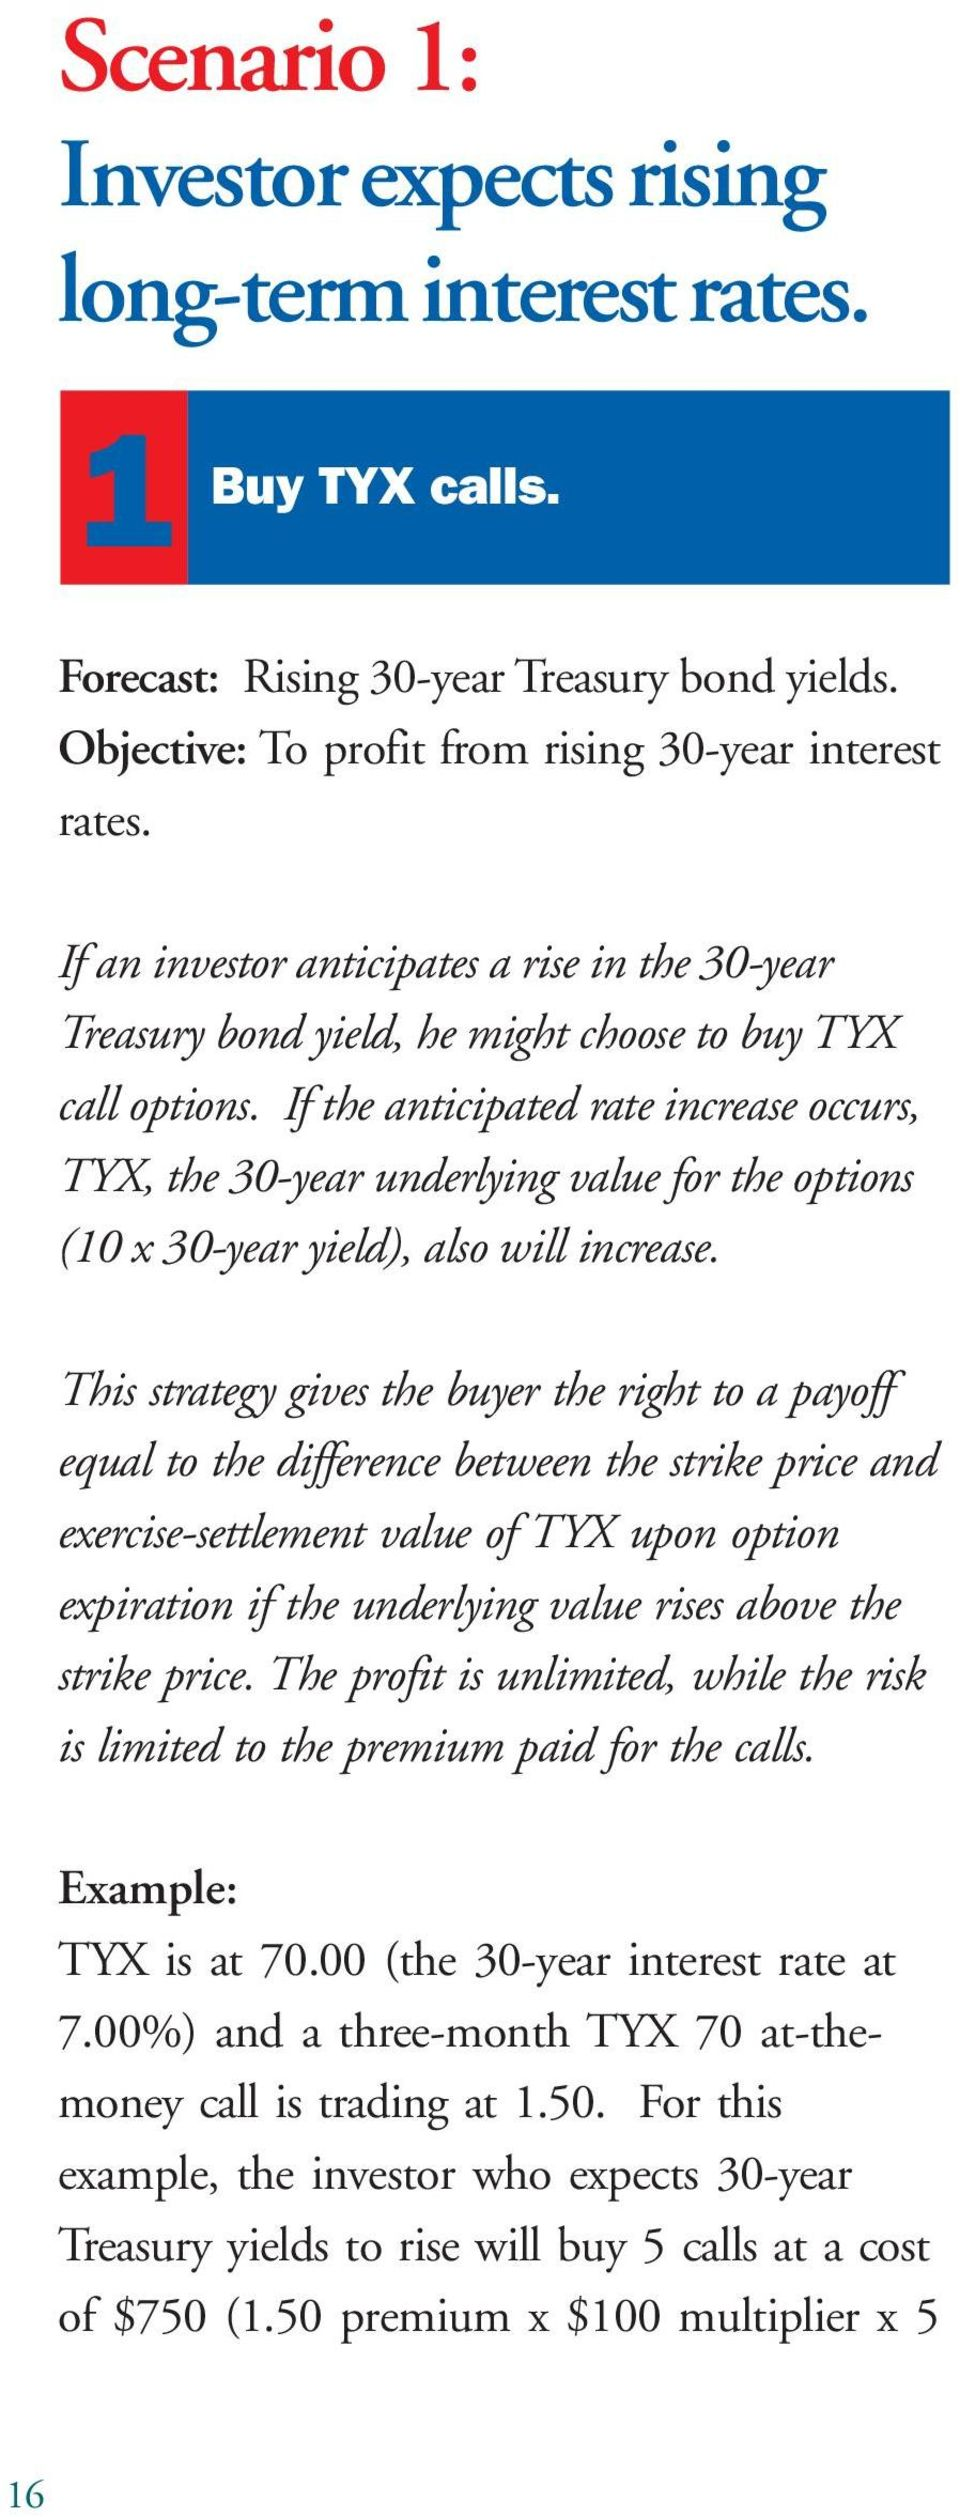 If the anticipated rate increase occurs, TYX, the 30-year underlying value for the options (10 x 30-year yield), also will increase.